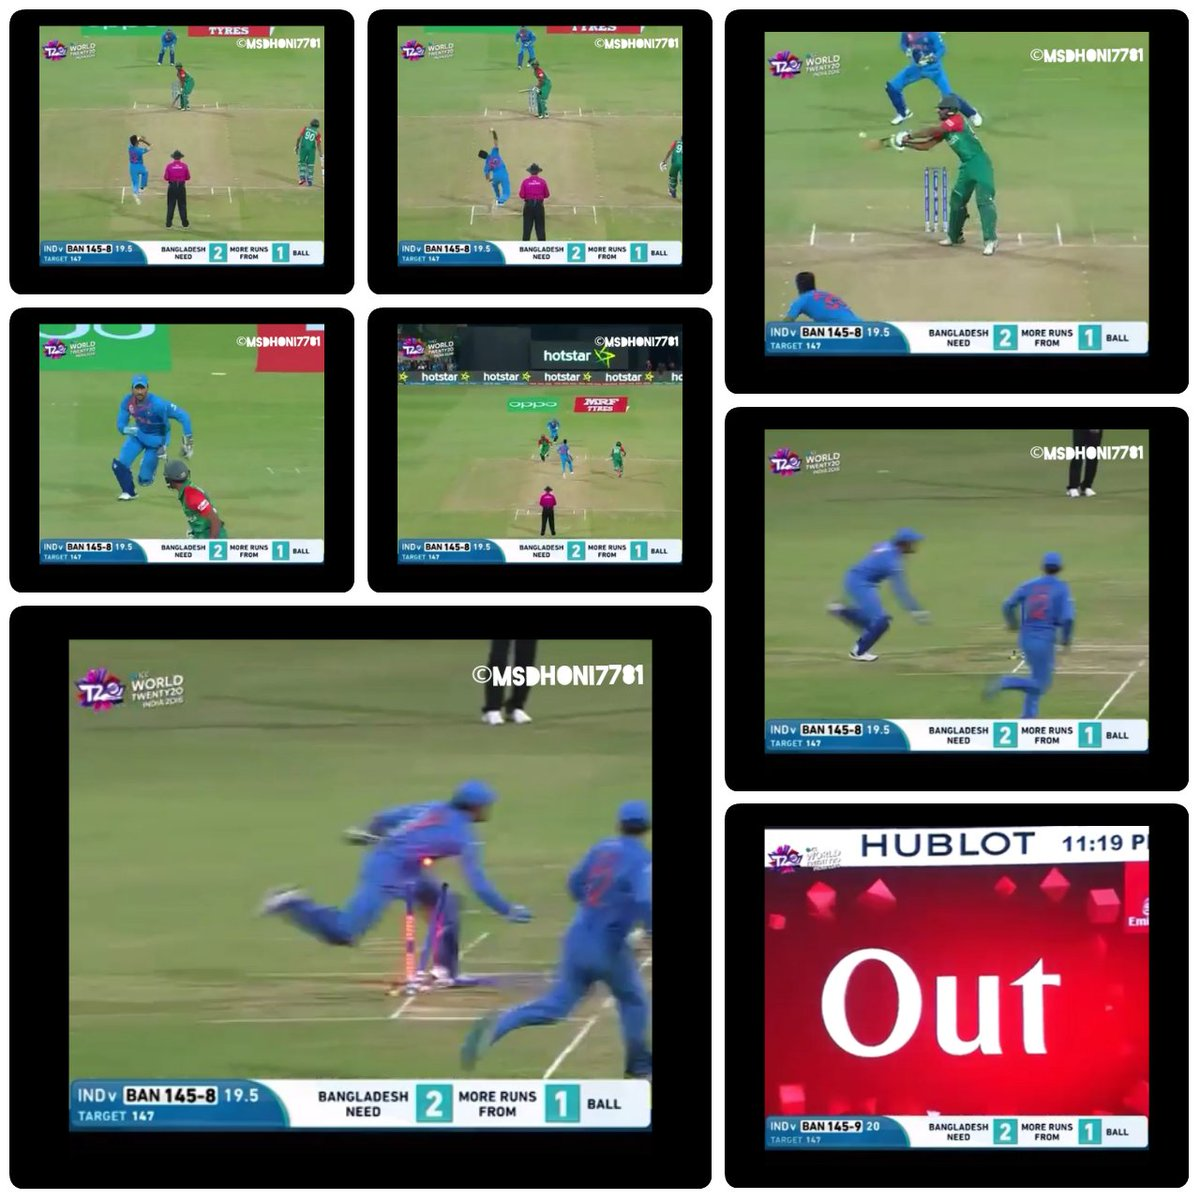 #OnThisDay, Last Year !!  Just KILL the RT button for this epic moment !! @msdhoni @BCCI Super Power - MS Dhoni  #Dhoni #TeamIndia #MahiWay<br>http://pic.twitter.com/zQfzMd7BFs